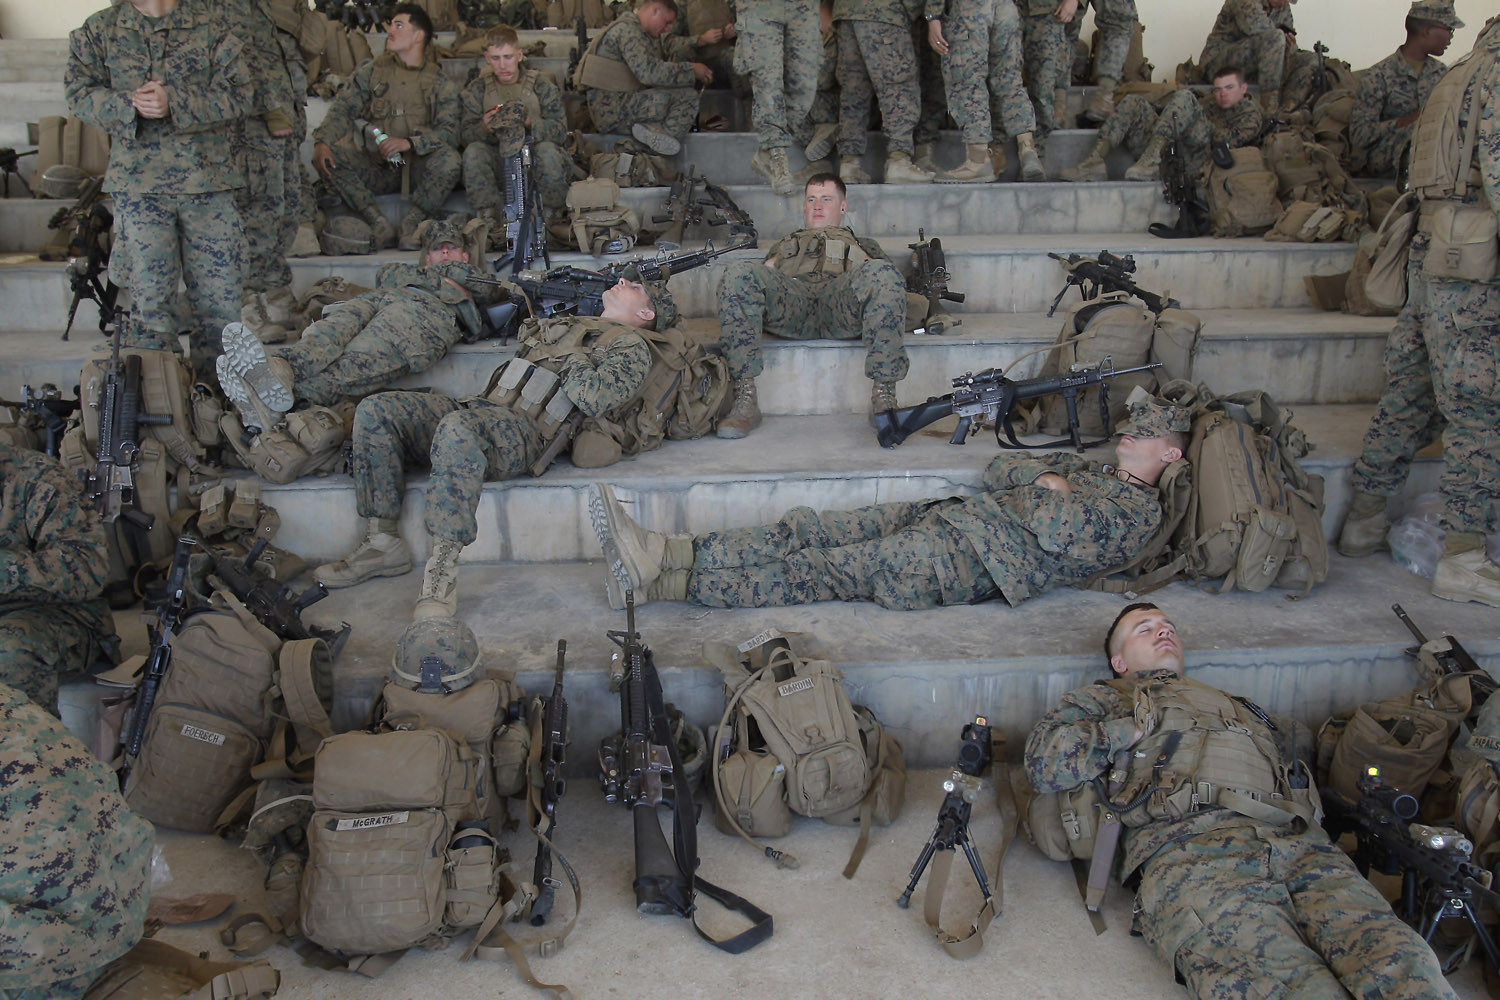 April 22, 2013. U.S. Marine soldiers from 3rd Marine Expeditionary force landing team deployed from Okinawa, Japan, rest during the CJLOTS (Combined Joint Logistics Over The Shore) exercise in Pohang, South Korea.